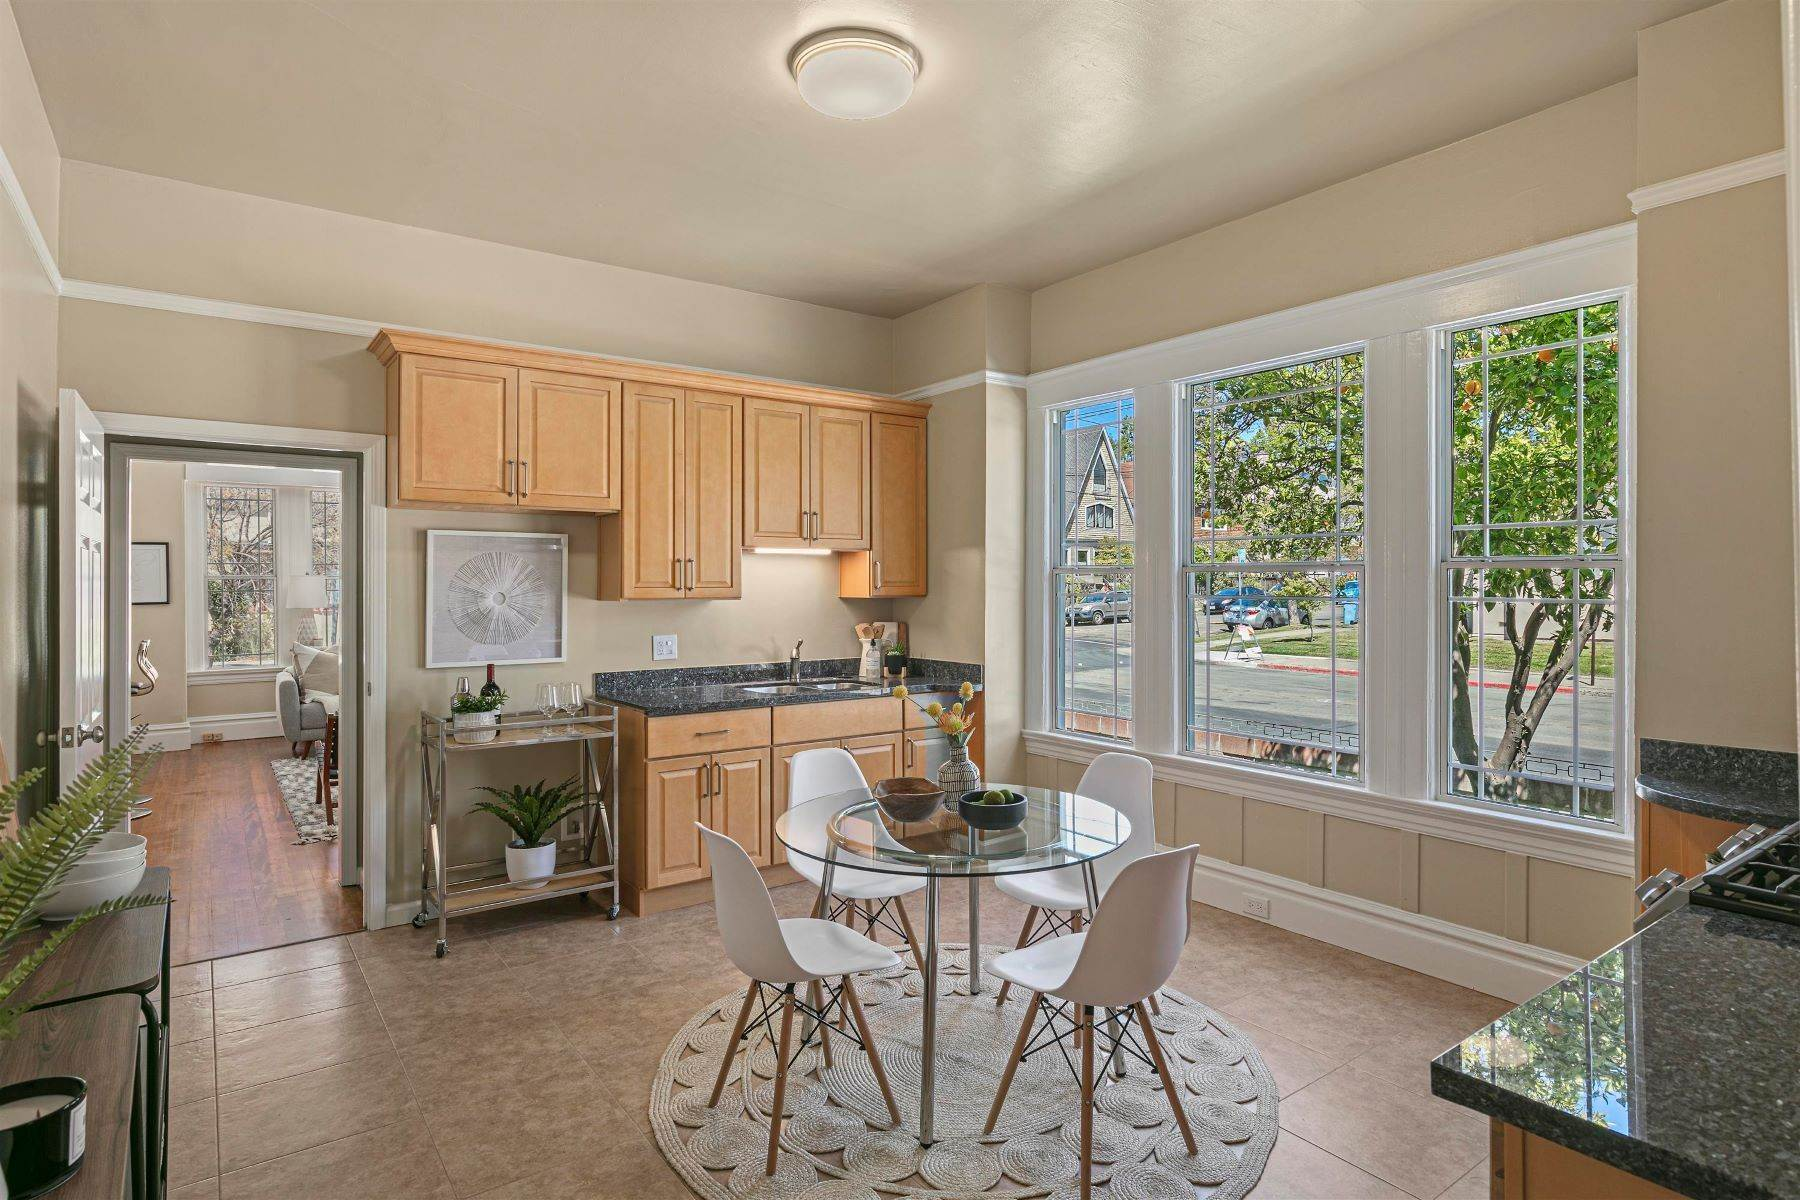 6. Property for Sale at Distinguished Triplex in an Ideal Berkeley Location 2240 Ward Street Berkeley, California 94705 United States